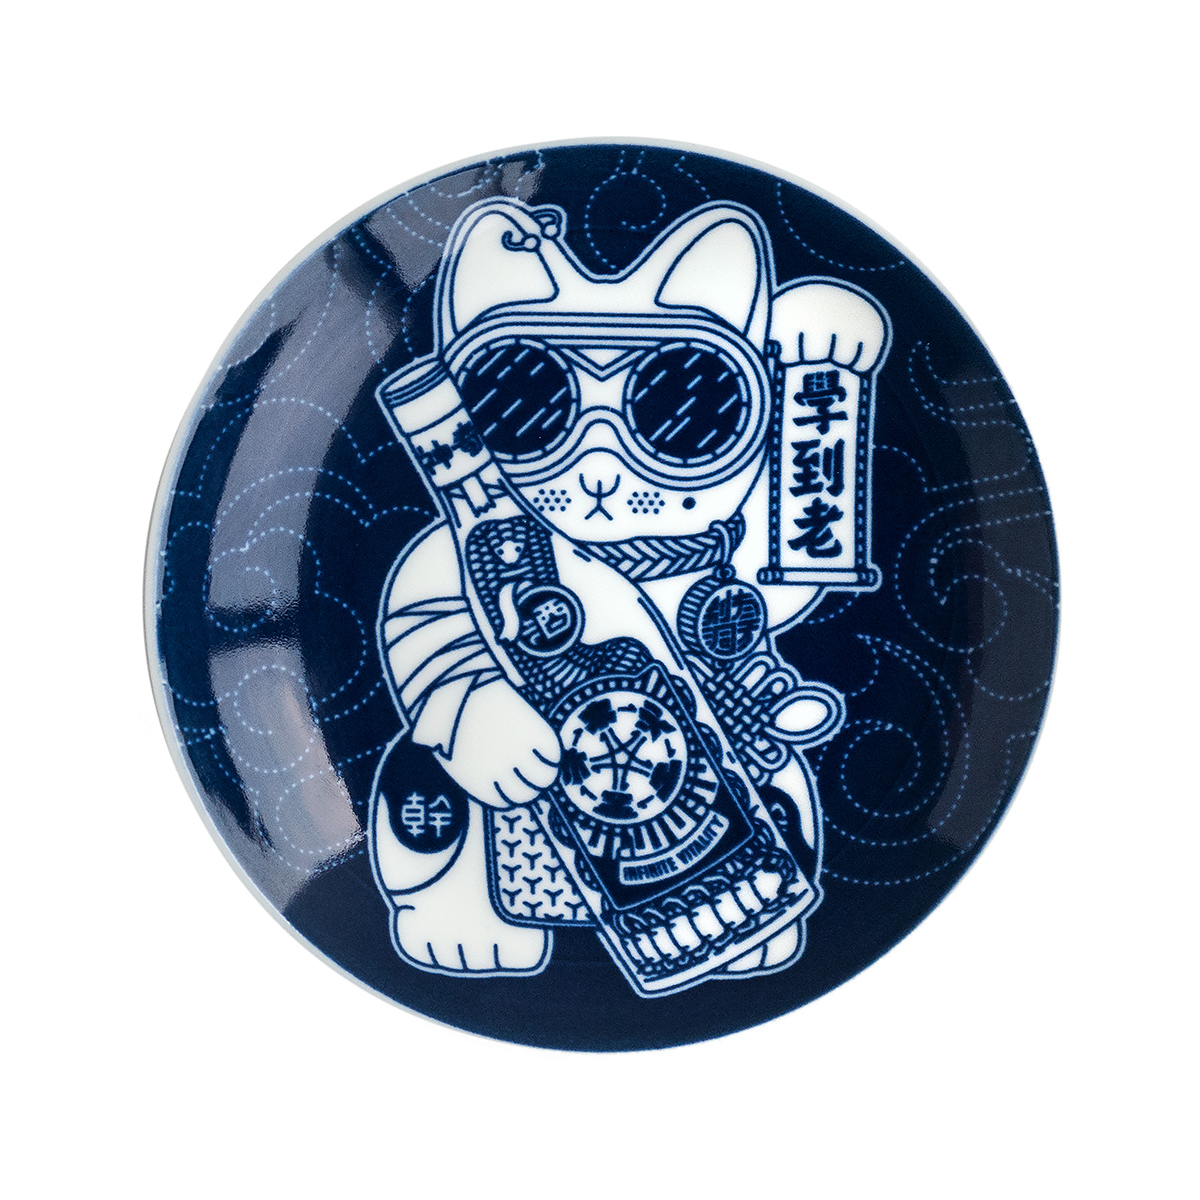 Gangster kitty plates